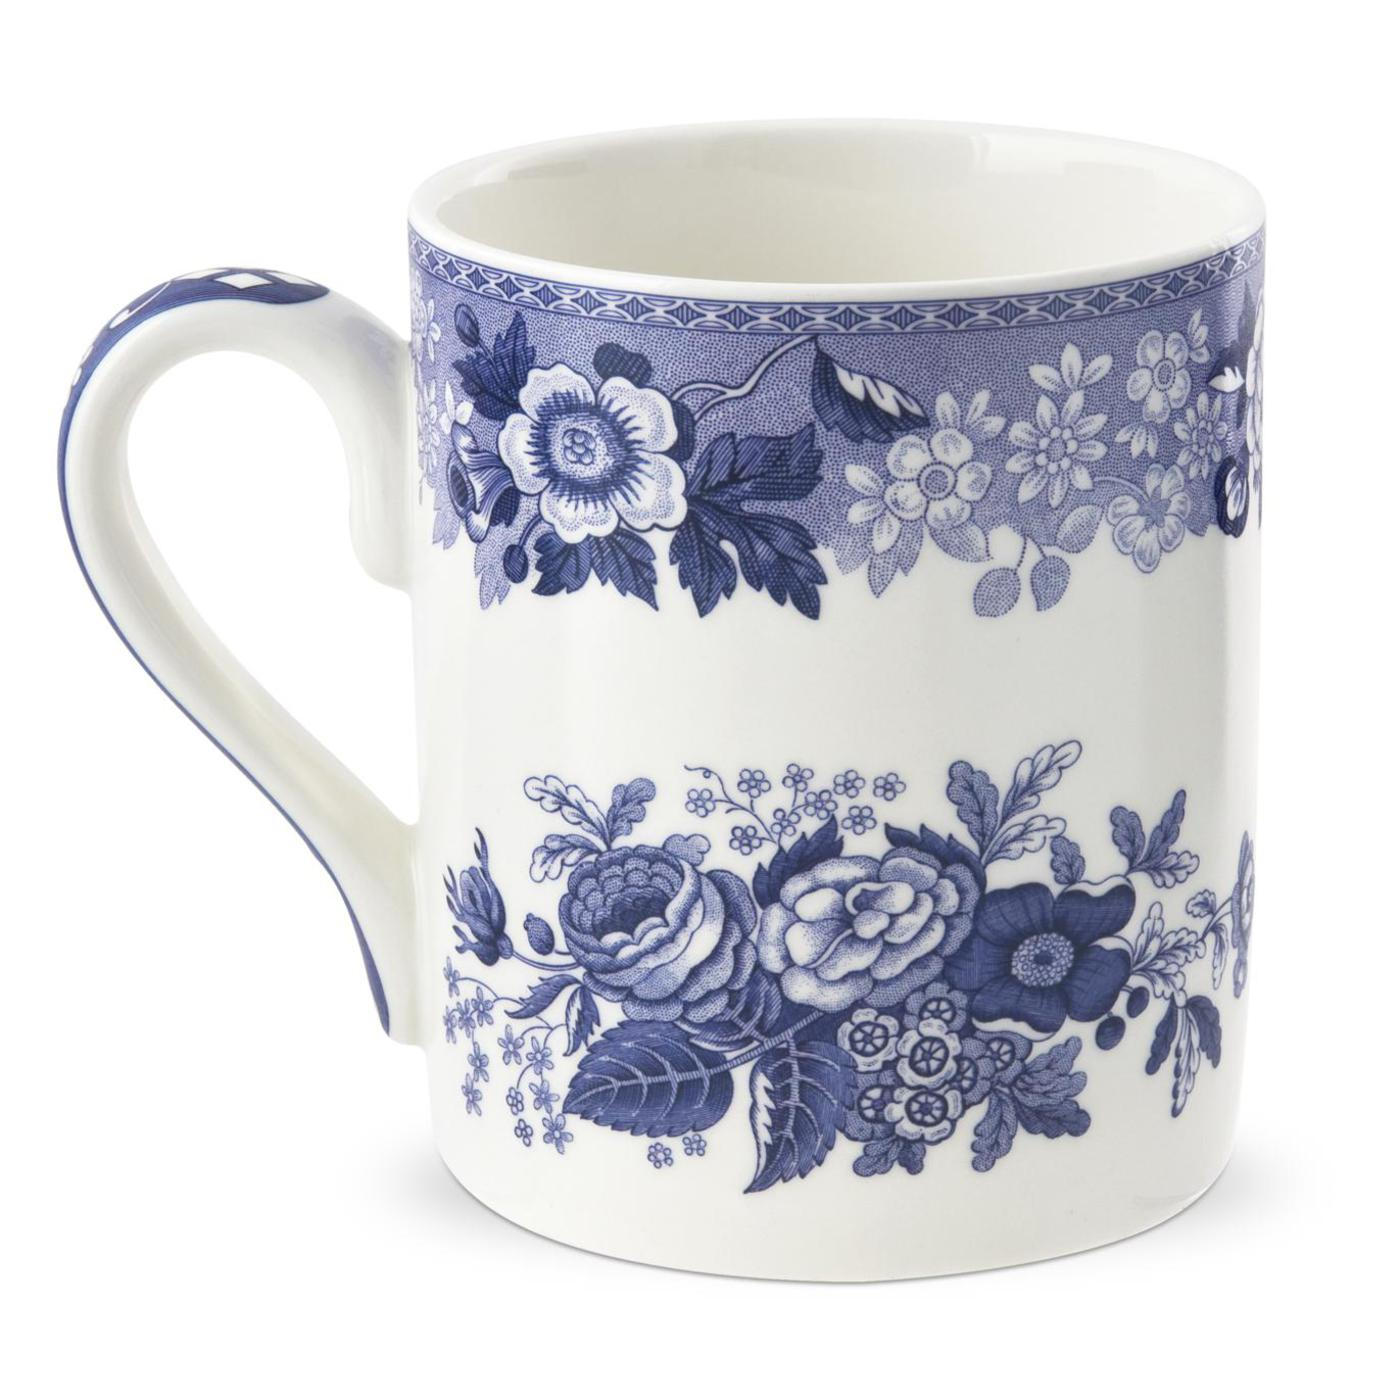 Spode Blue Room Blue Rose Mug image number 0